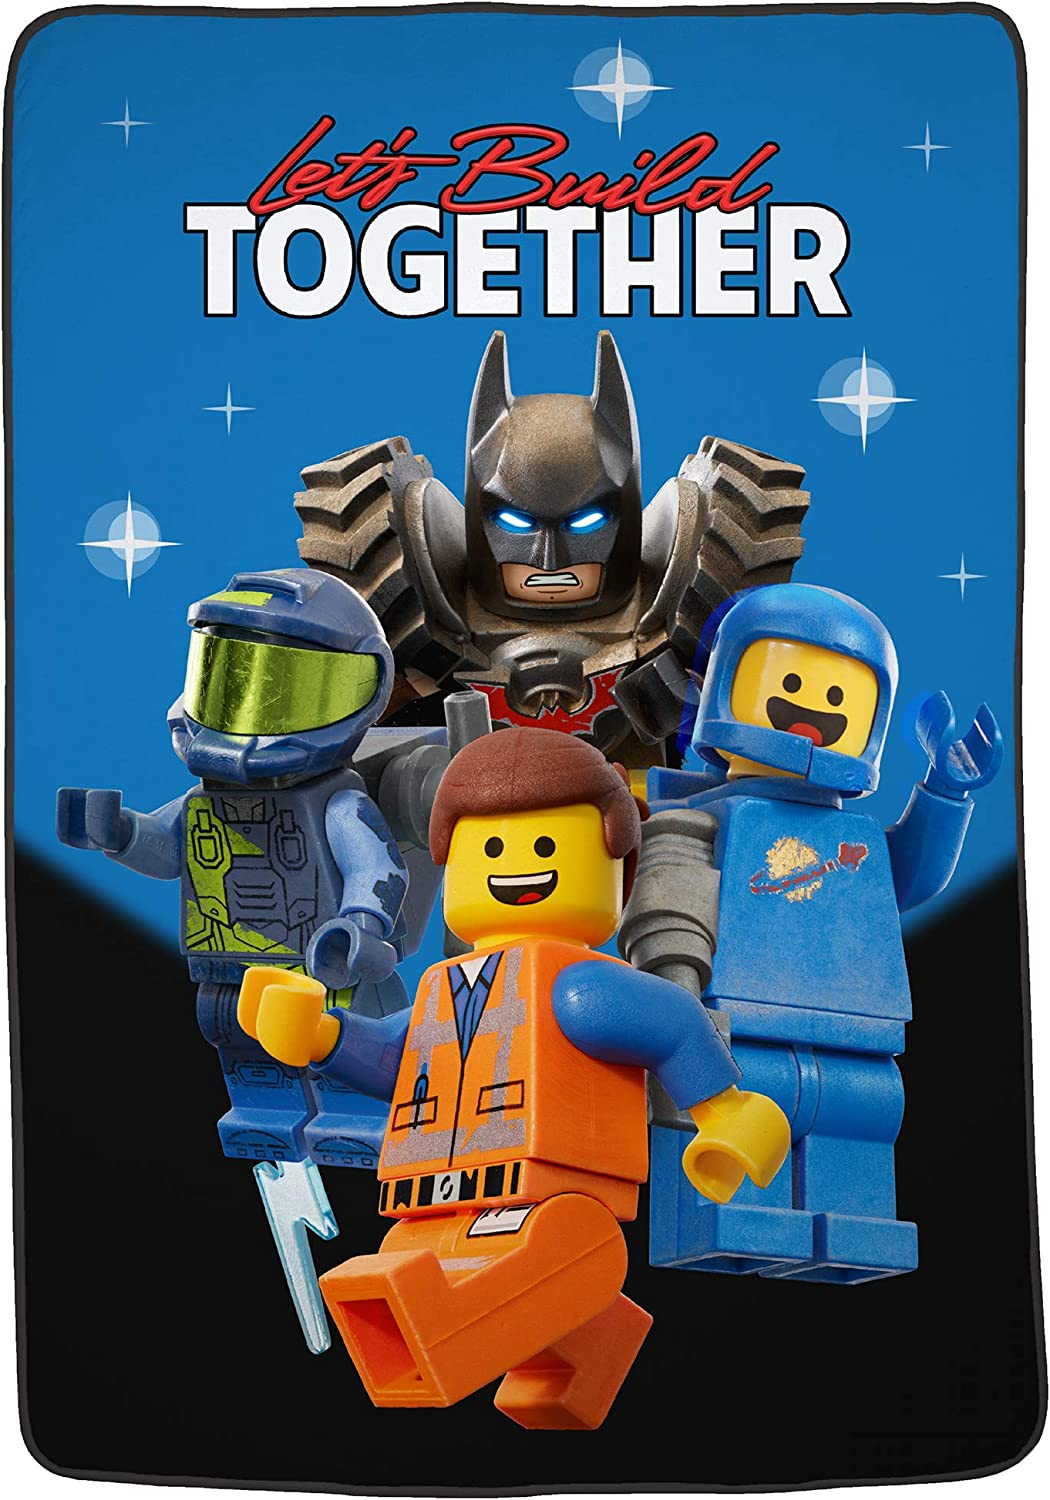 "Franco Kids Bedding Super Soft Plush Microfiber Blanket, Twin/Full Size 62"" x 90"", Lego Movie 2"